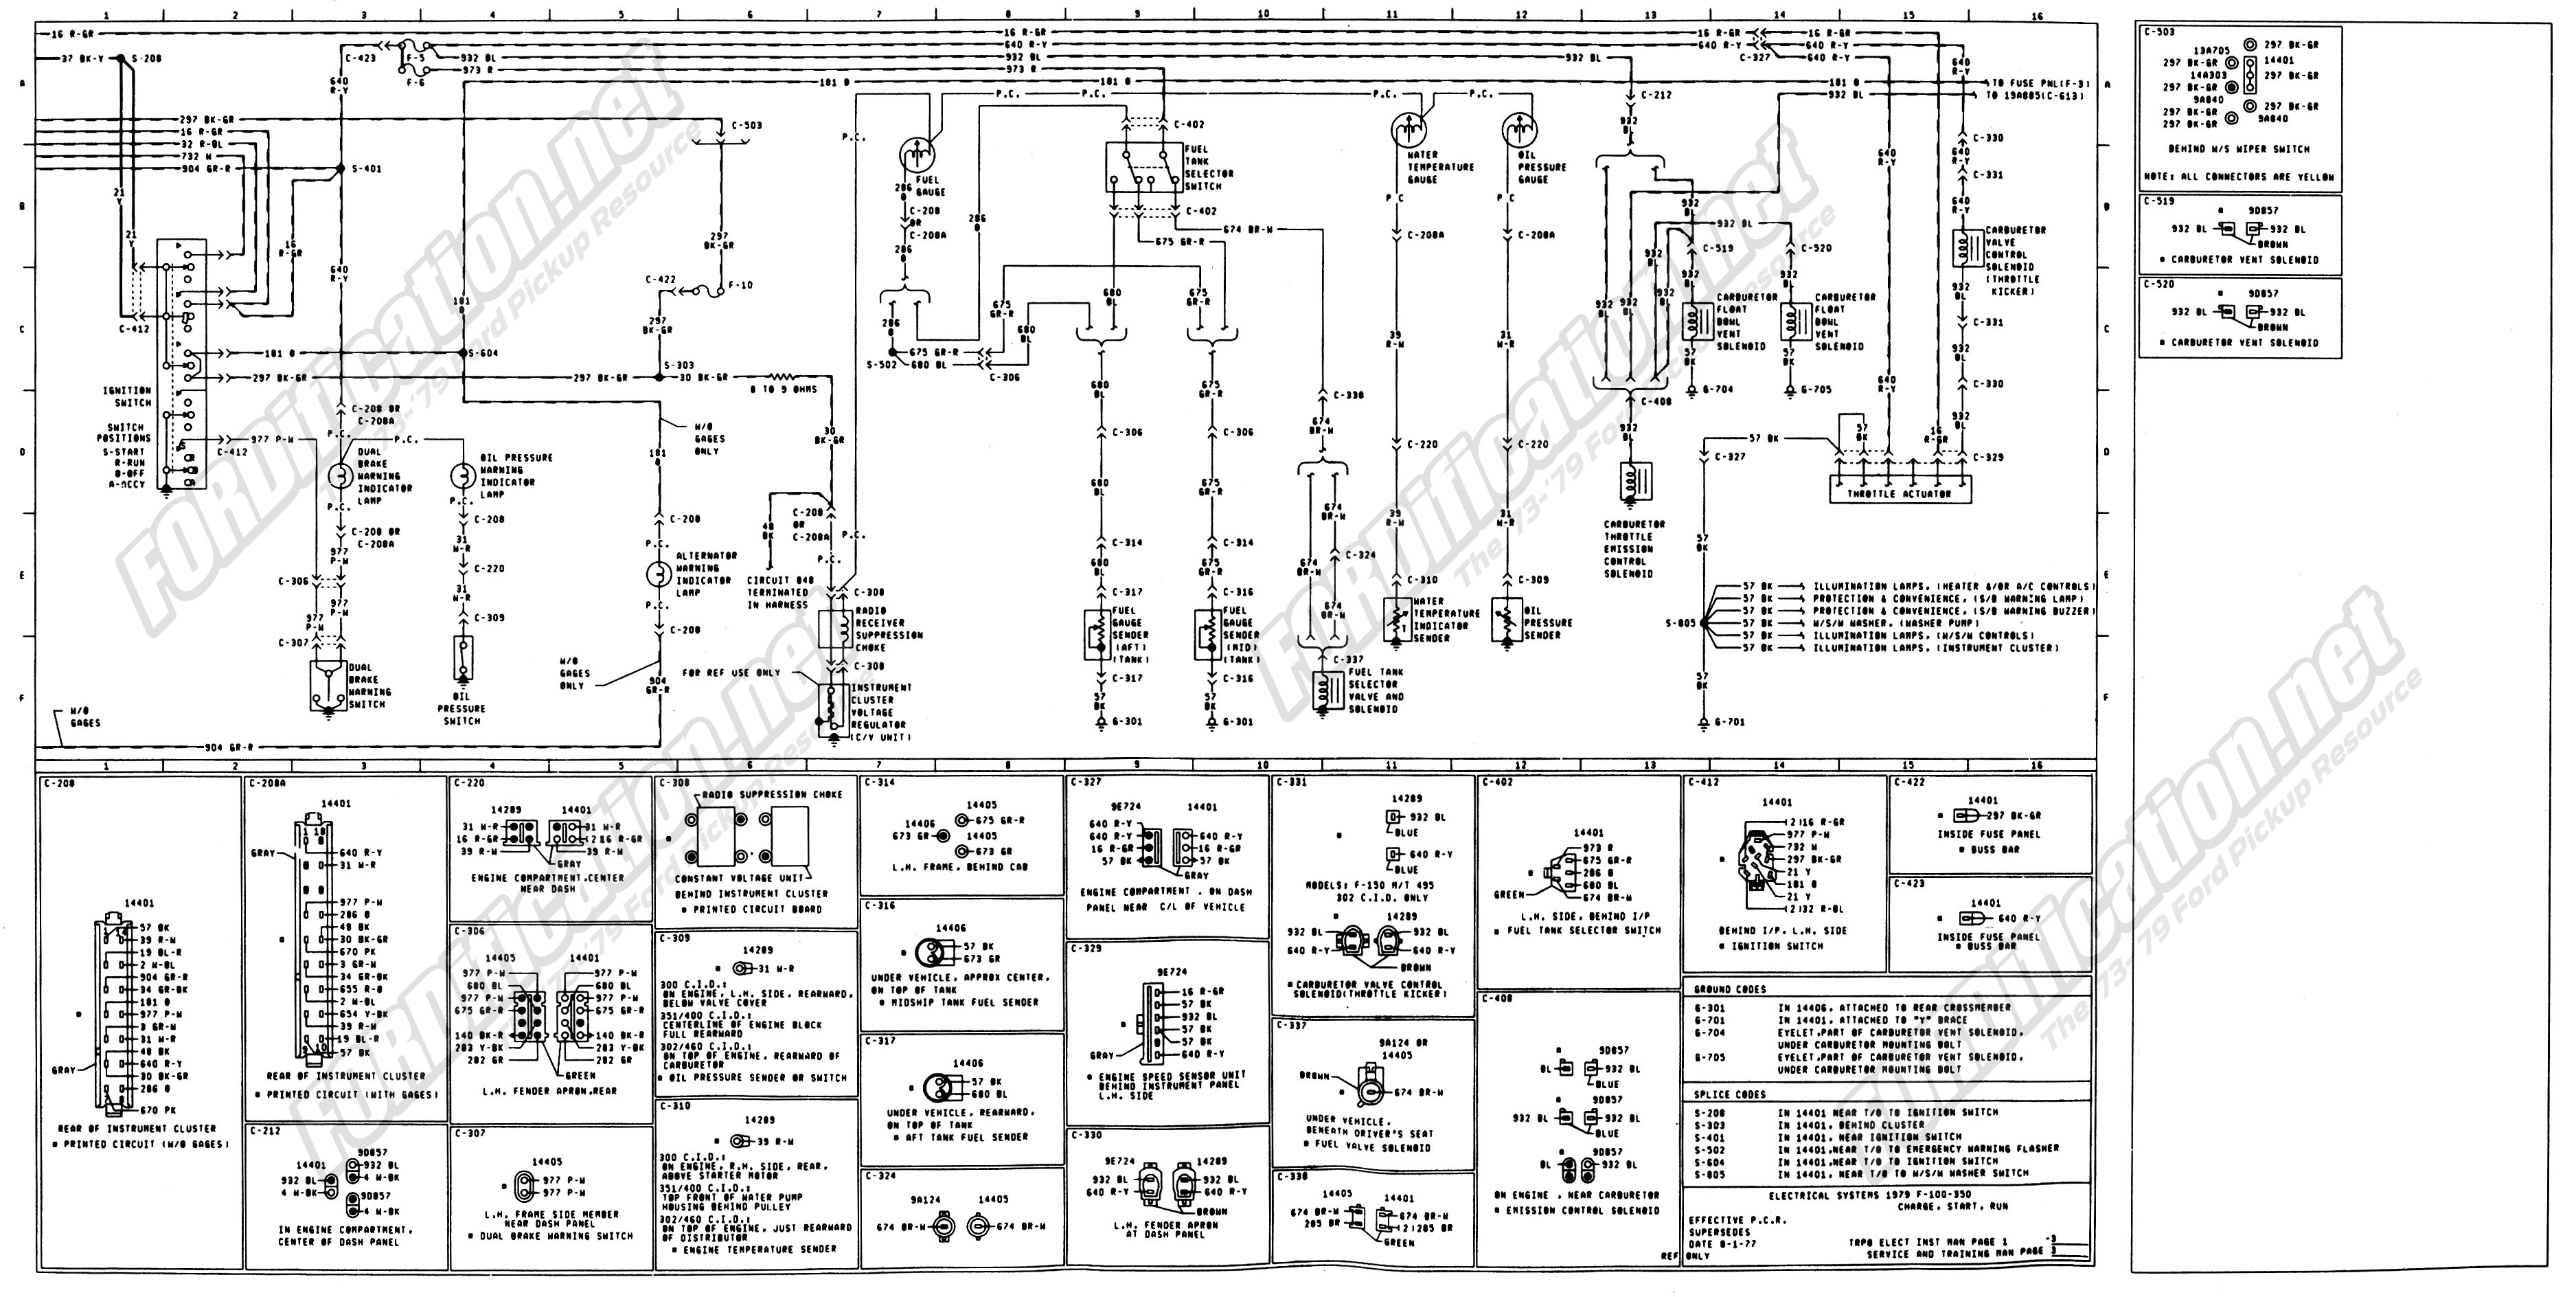 1951 Chevy Bel Air Wiring Diagram Library 57 Ignition Switch 1955 F100 Fuse Schematic Diagrams Rh Ogmconsulting Co 1959 Dash